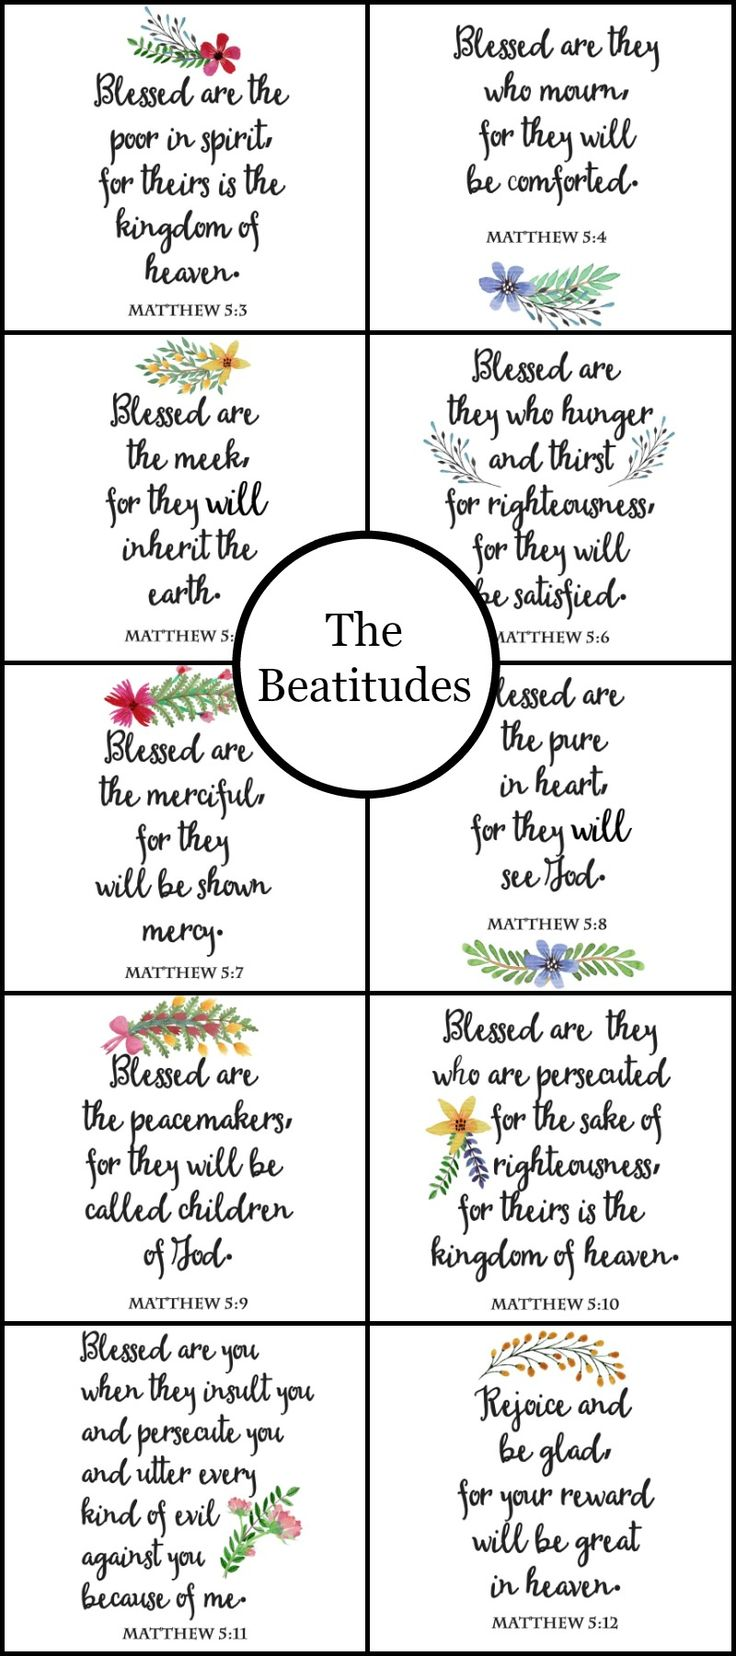 Worksheets Beatitudes Worksheet best 25 beatitudes ideas on pinterest matthew 5 3 the printable wall art